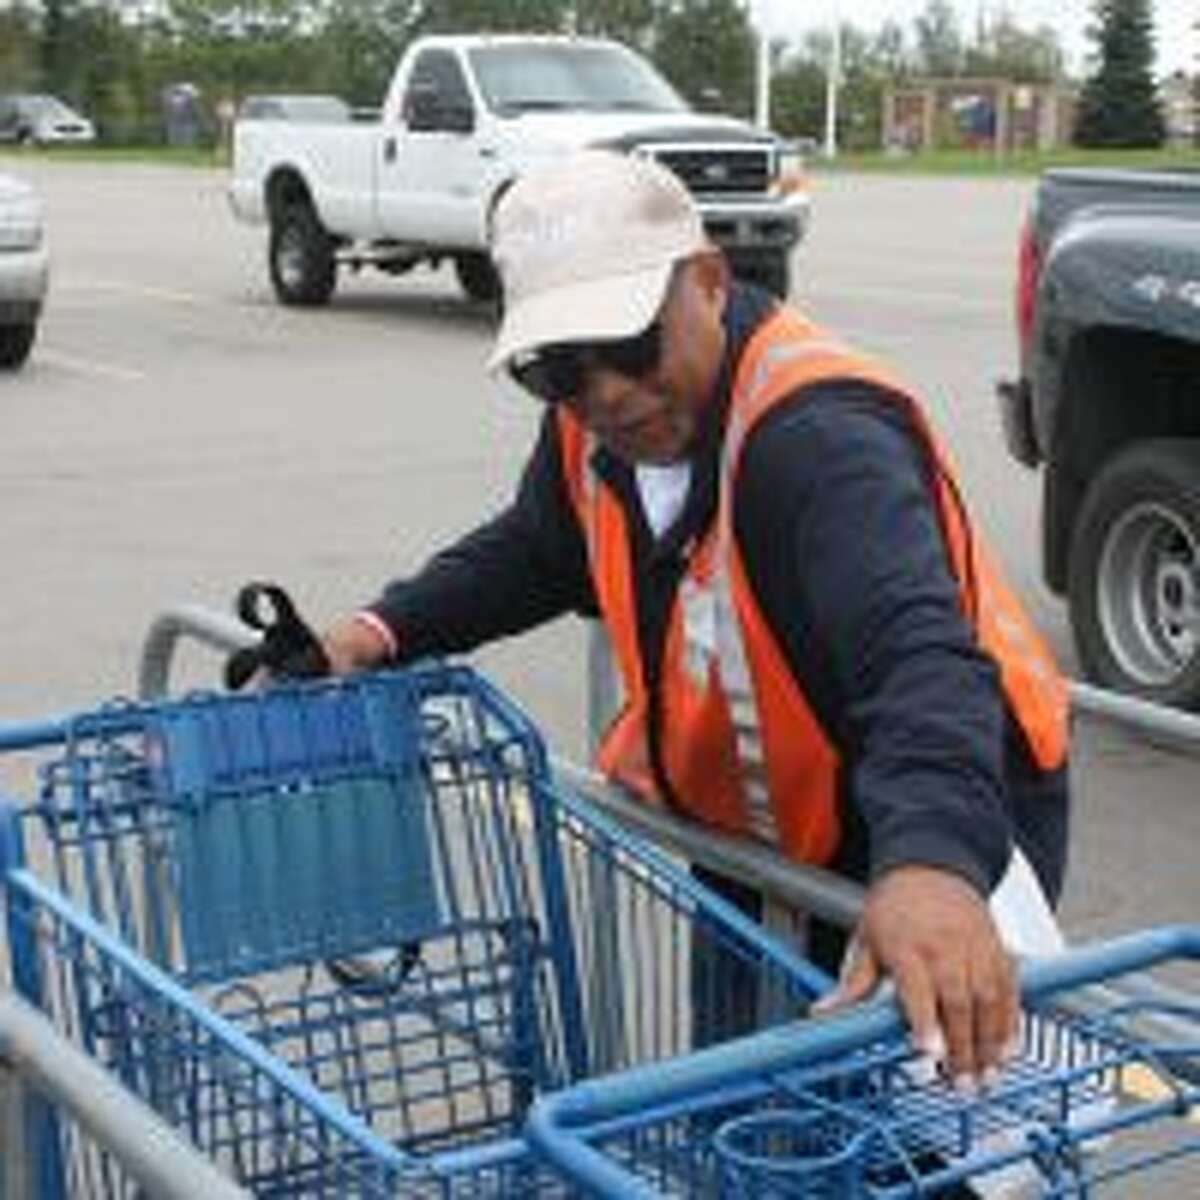 Levi Arrington, 45, of Big Rapids, works as a cart-pusher at the local Meijer outlet. He is also an advocate for people such as himself, who suffer from cognitive impairments. (Pioneer photo/Tim Rath)